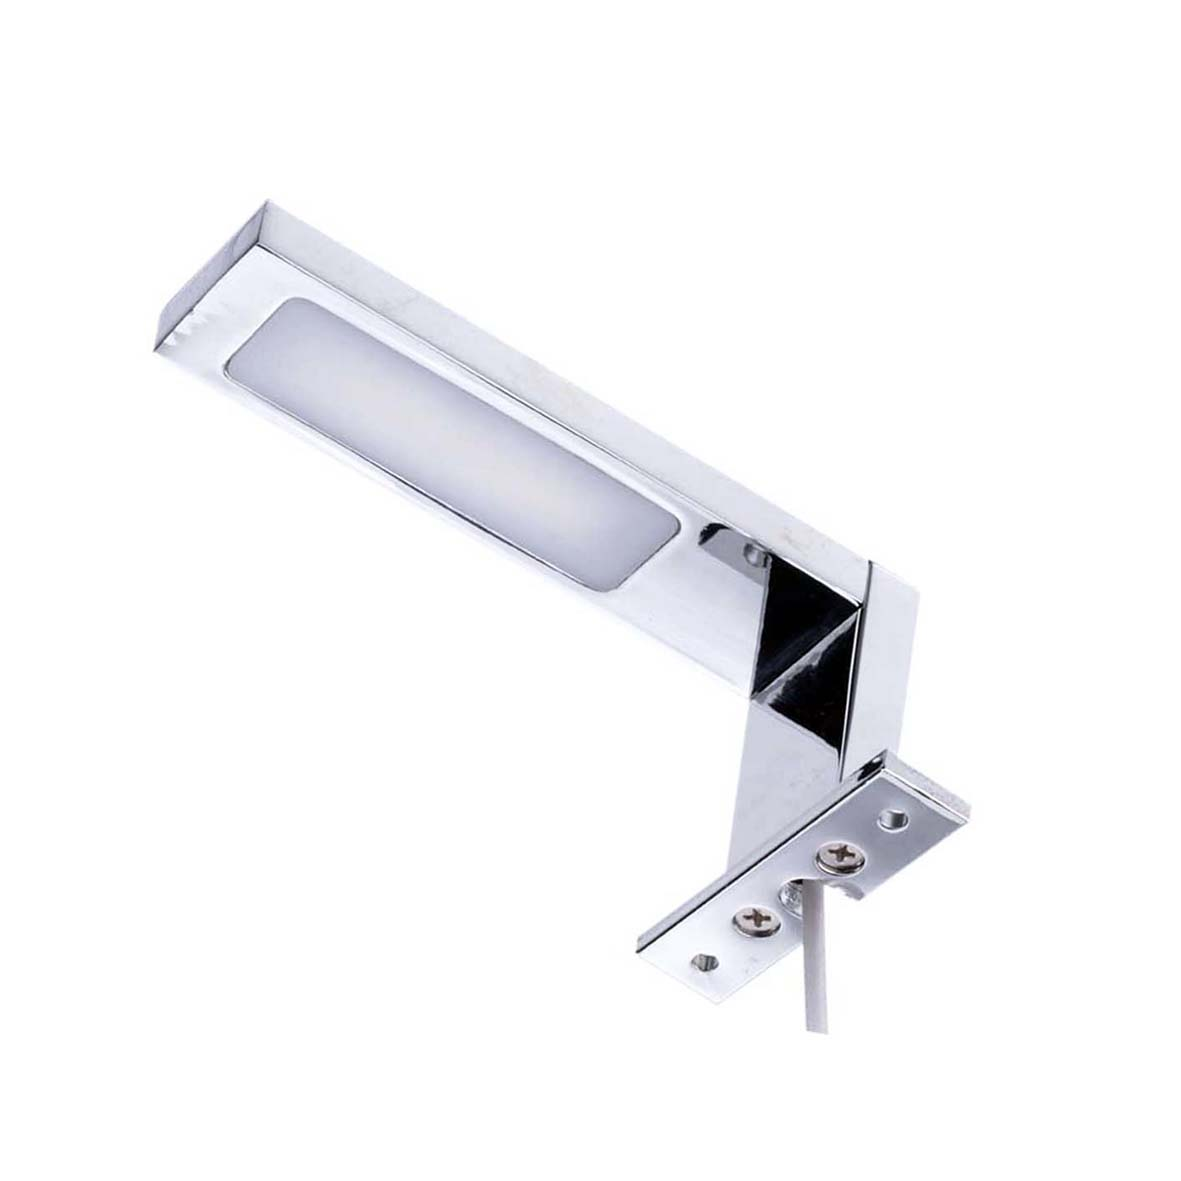 Lámpara de pared led de 3W de Baño de la Lámpara de pared LED